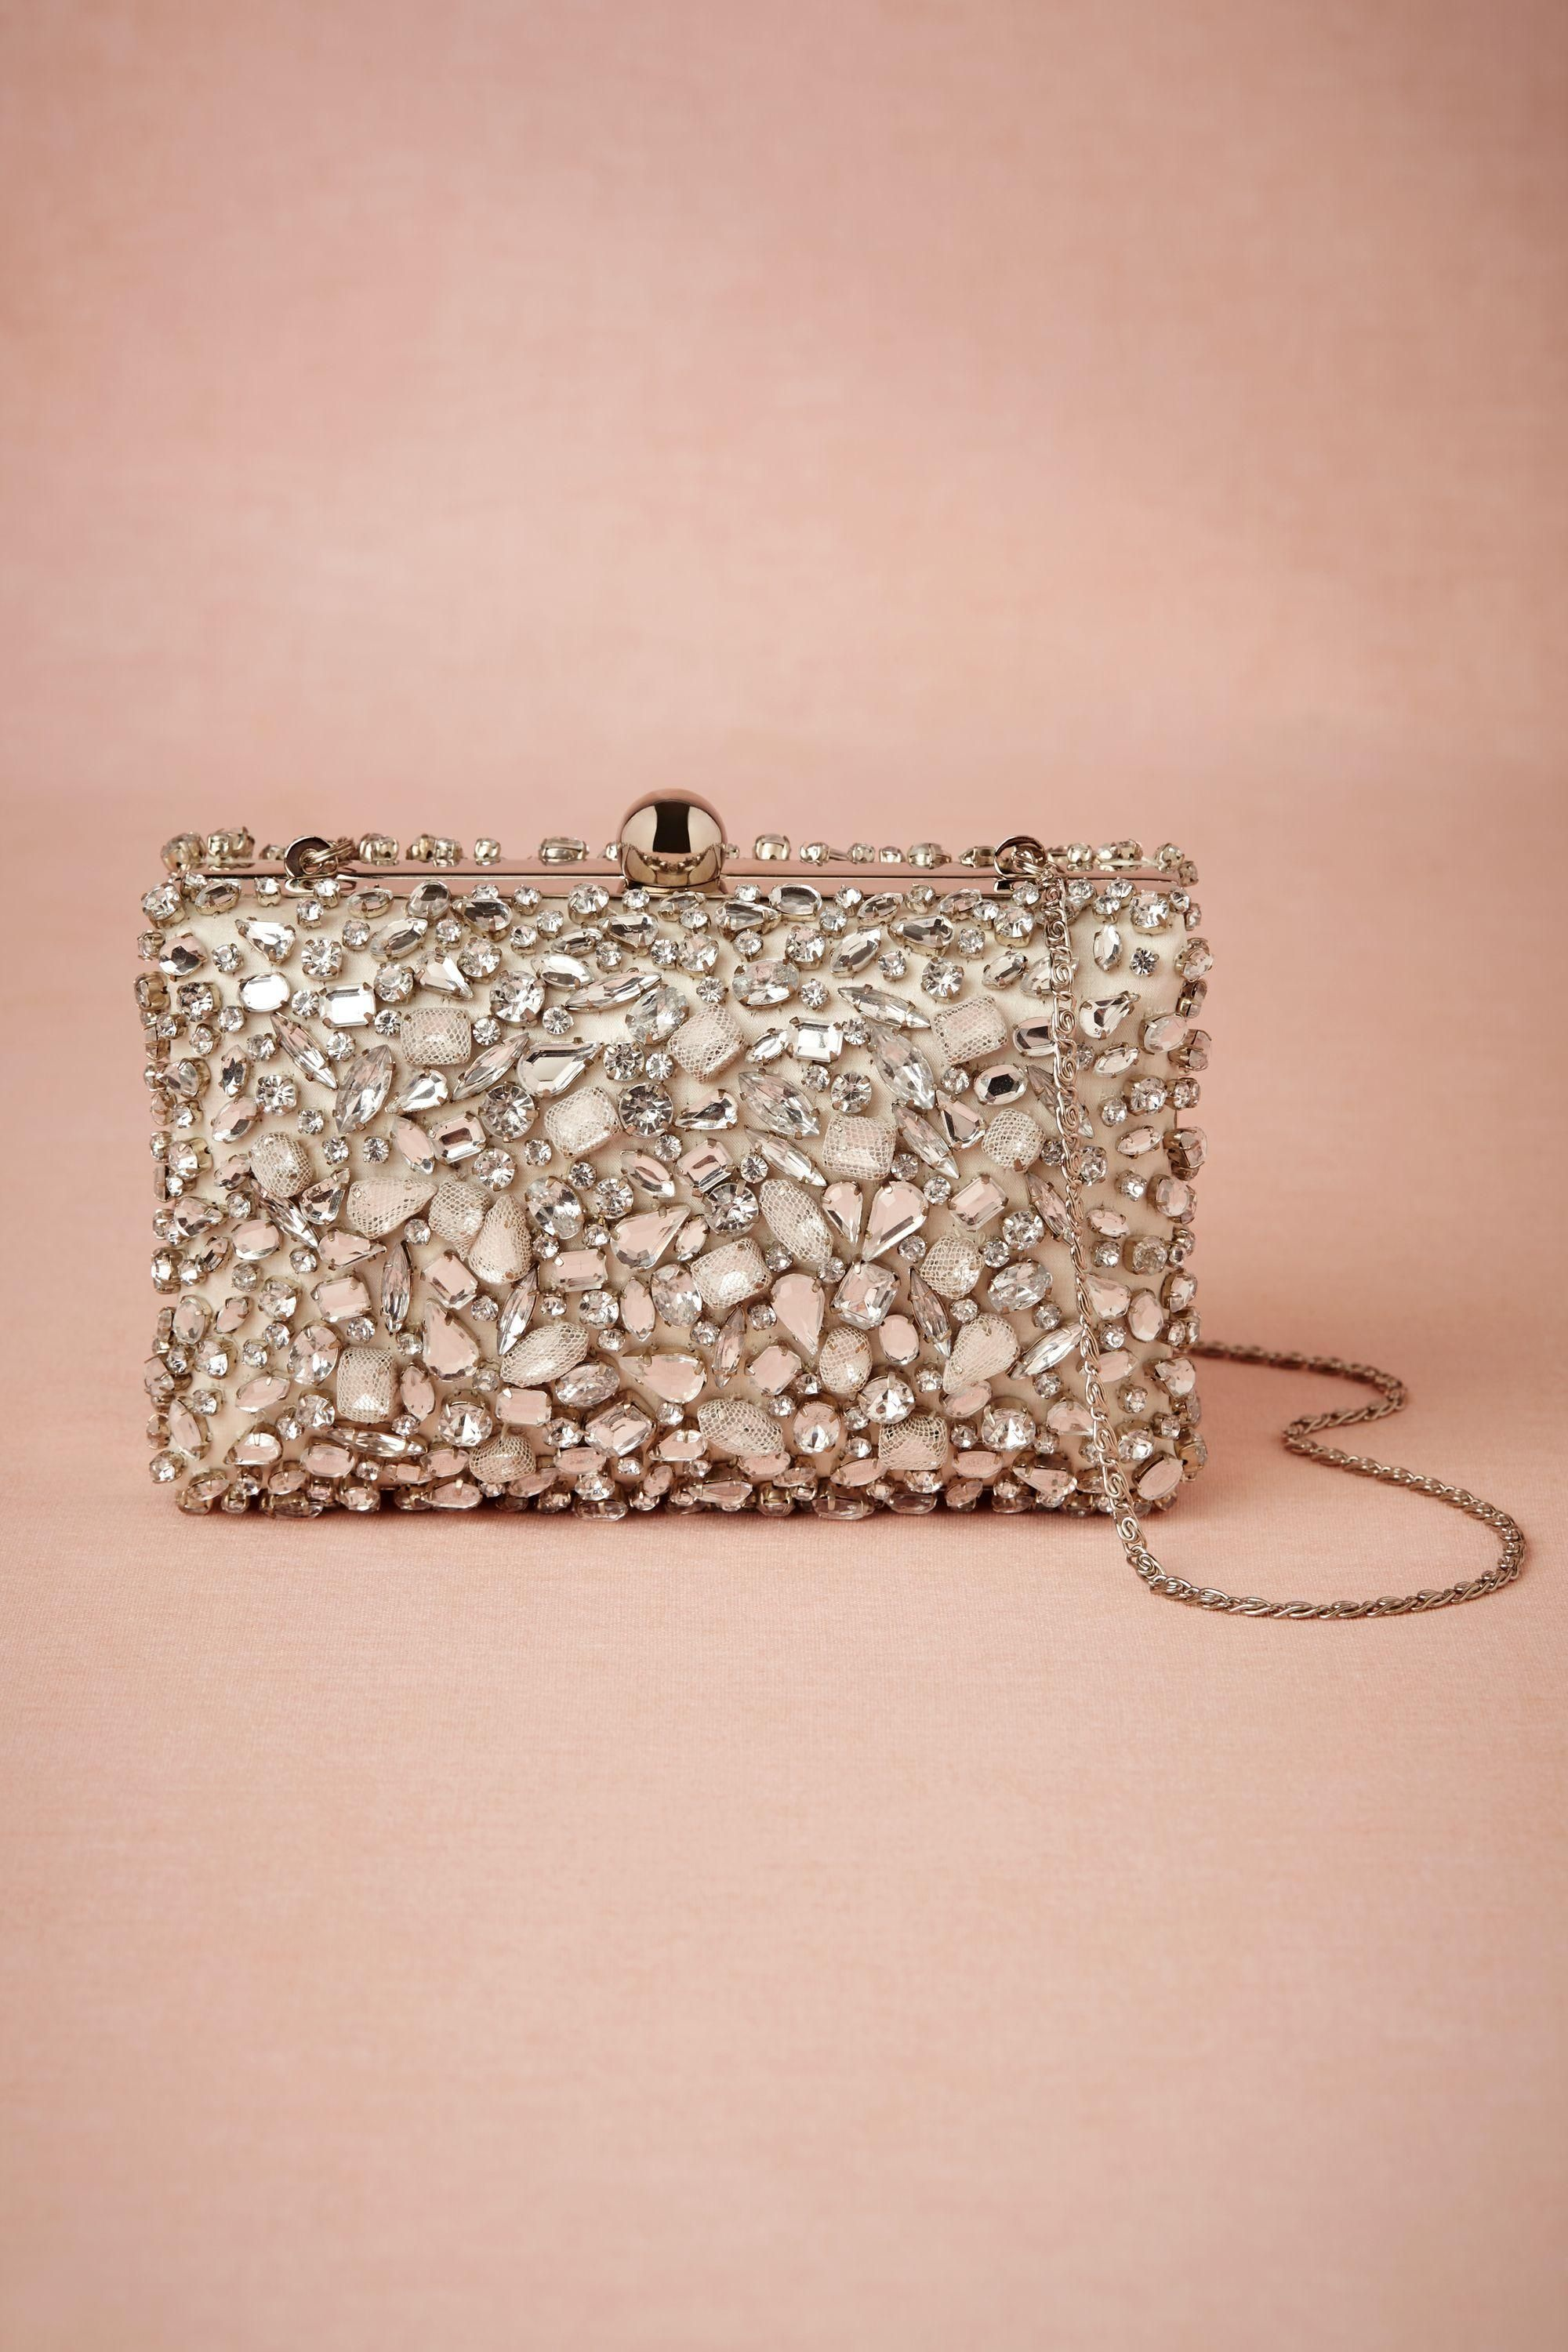 93cd5513fc0 This jeweled clutch purse is beautiful. #wedding #bridal #gift #bridesmaids  #purse #evening #party #dance